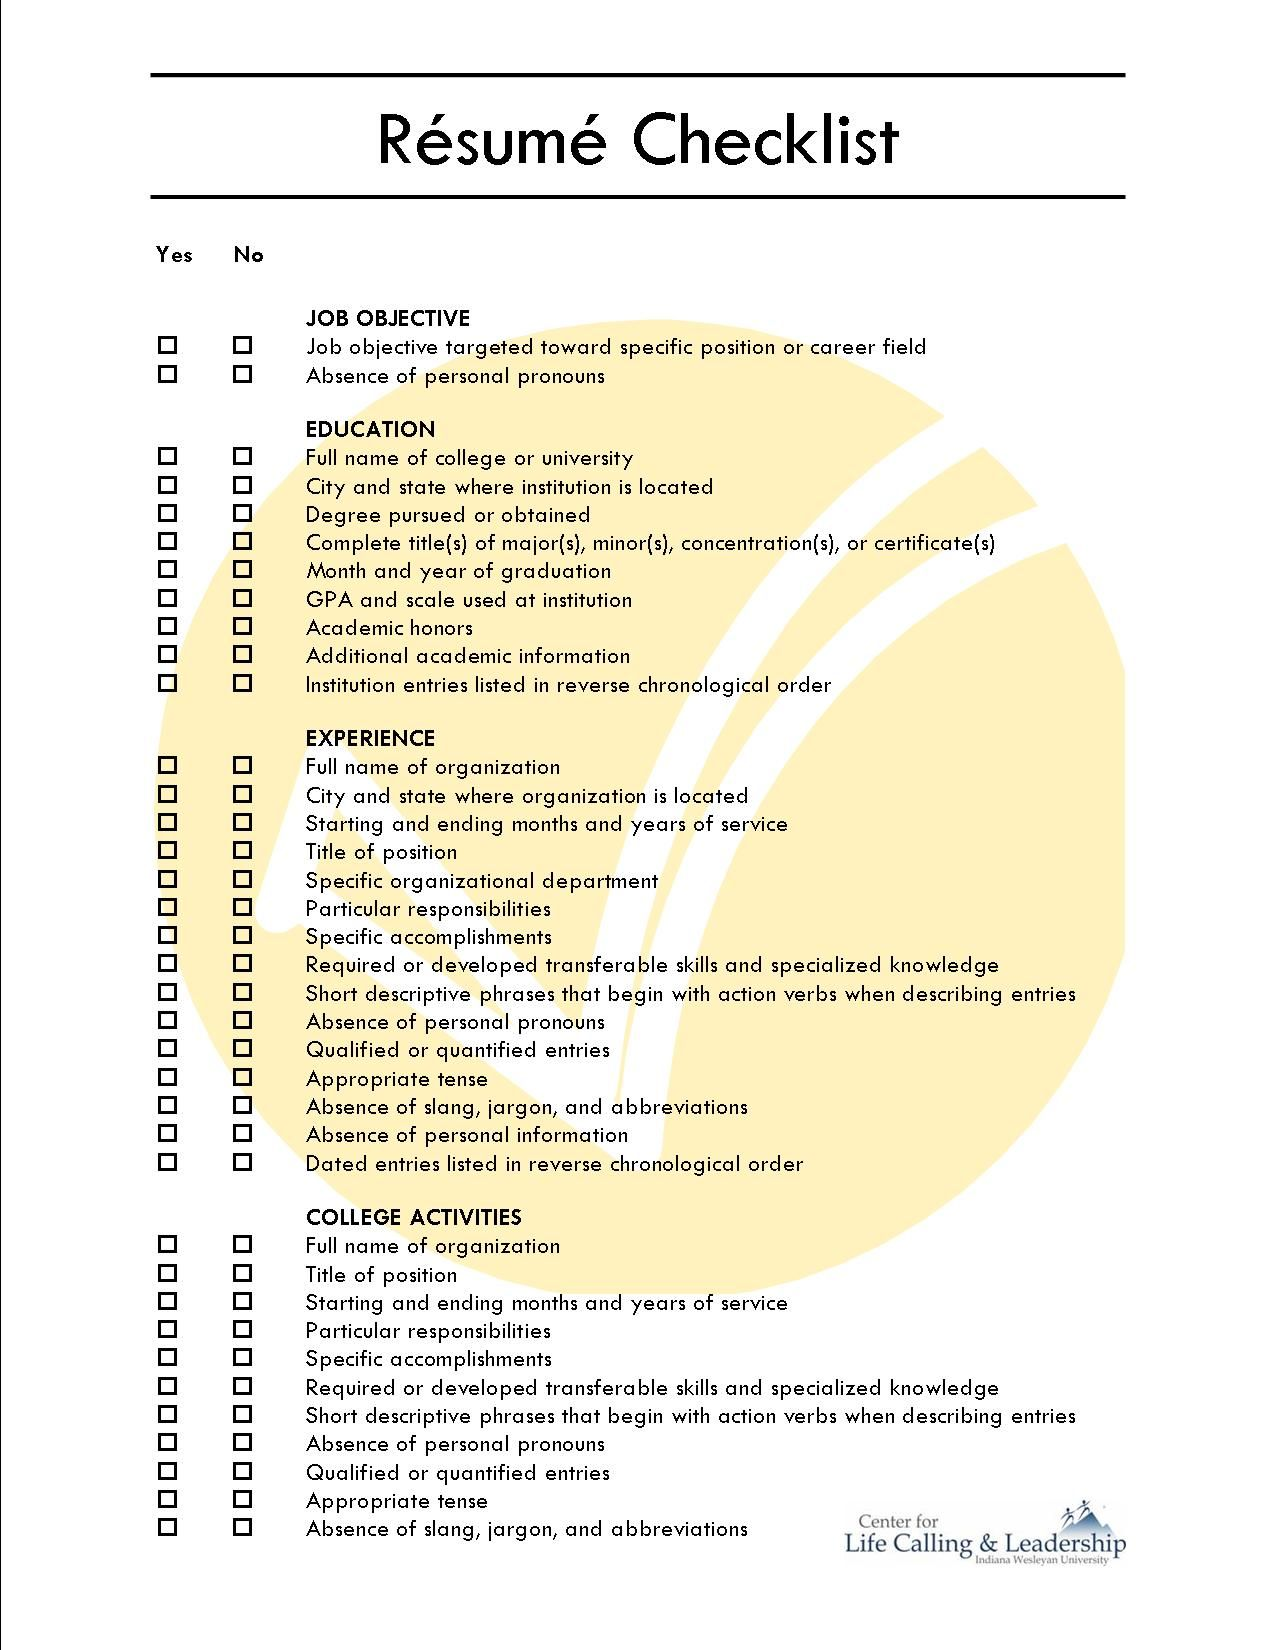 comprehensive resume checklist sample comprehensive resume comprehensive resume checklist sample comprehensive resume checklist sample will give ideas and strategies to develop